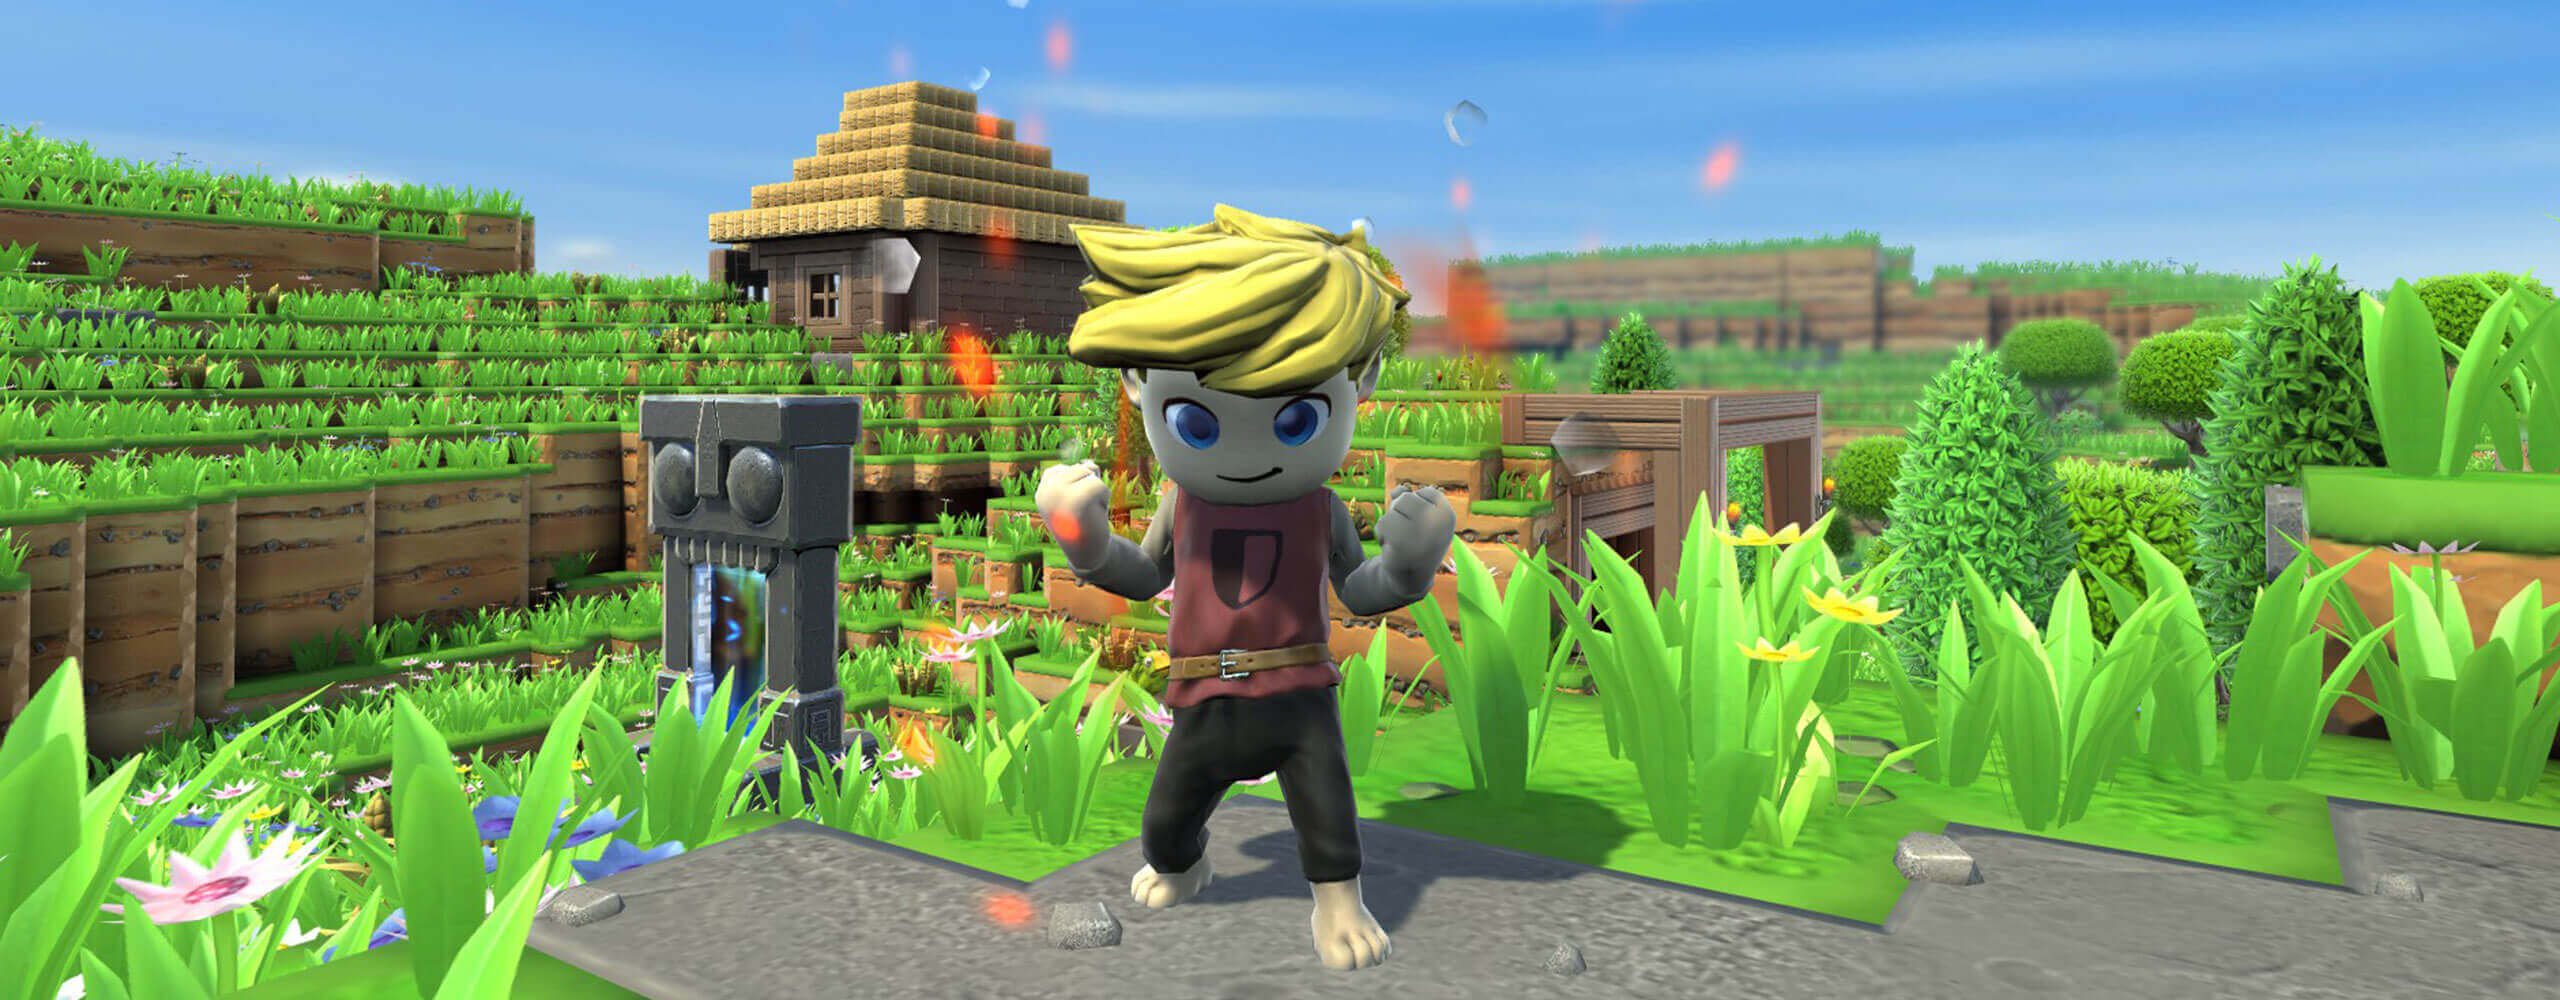 PlayStation 4 and Xbox One FAQ Guide - Portal Knights